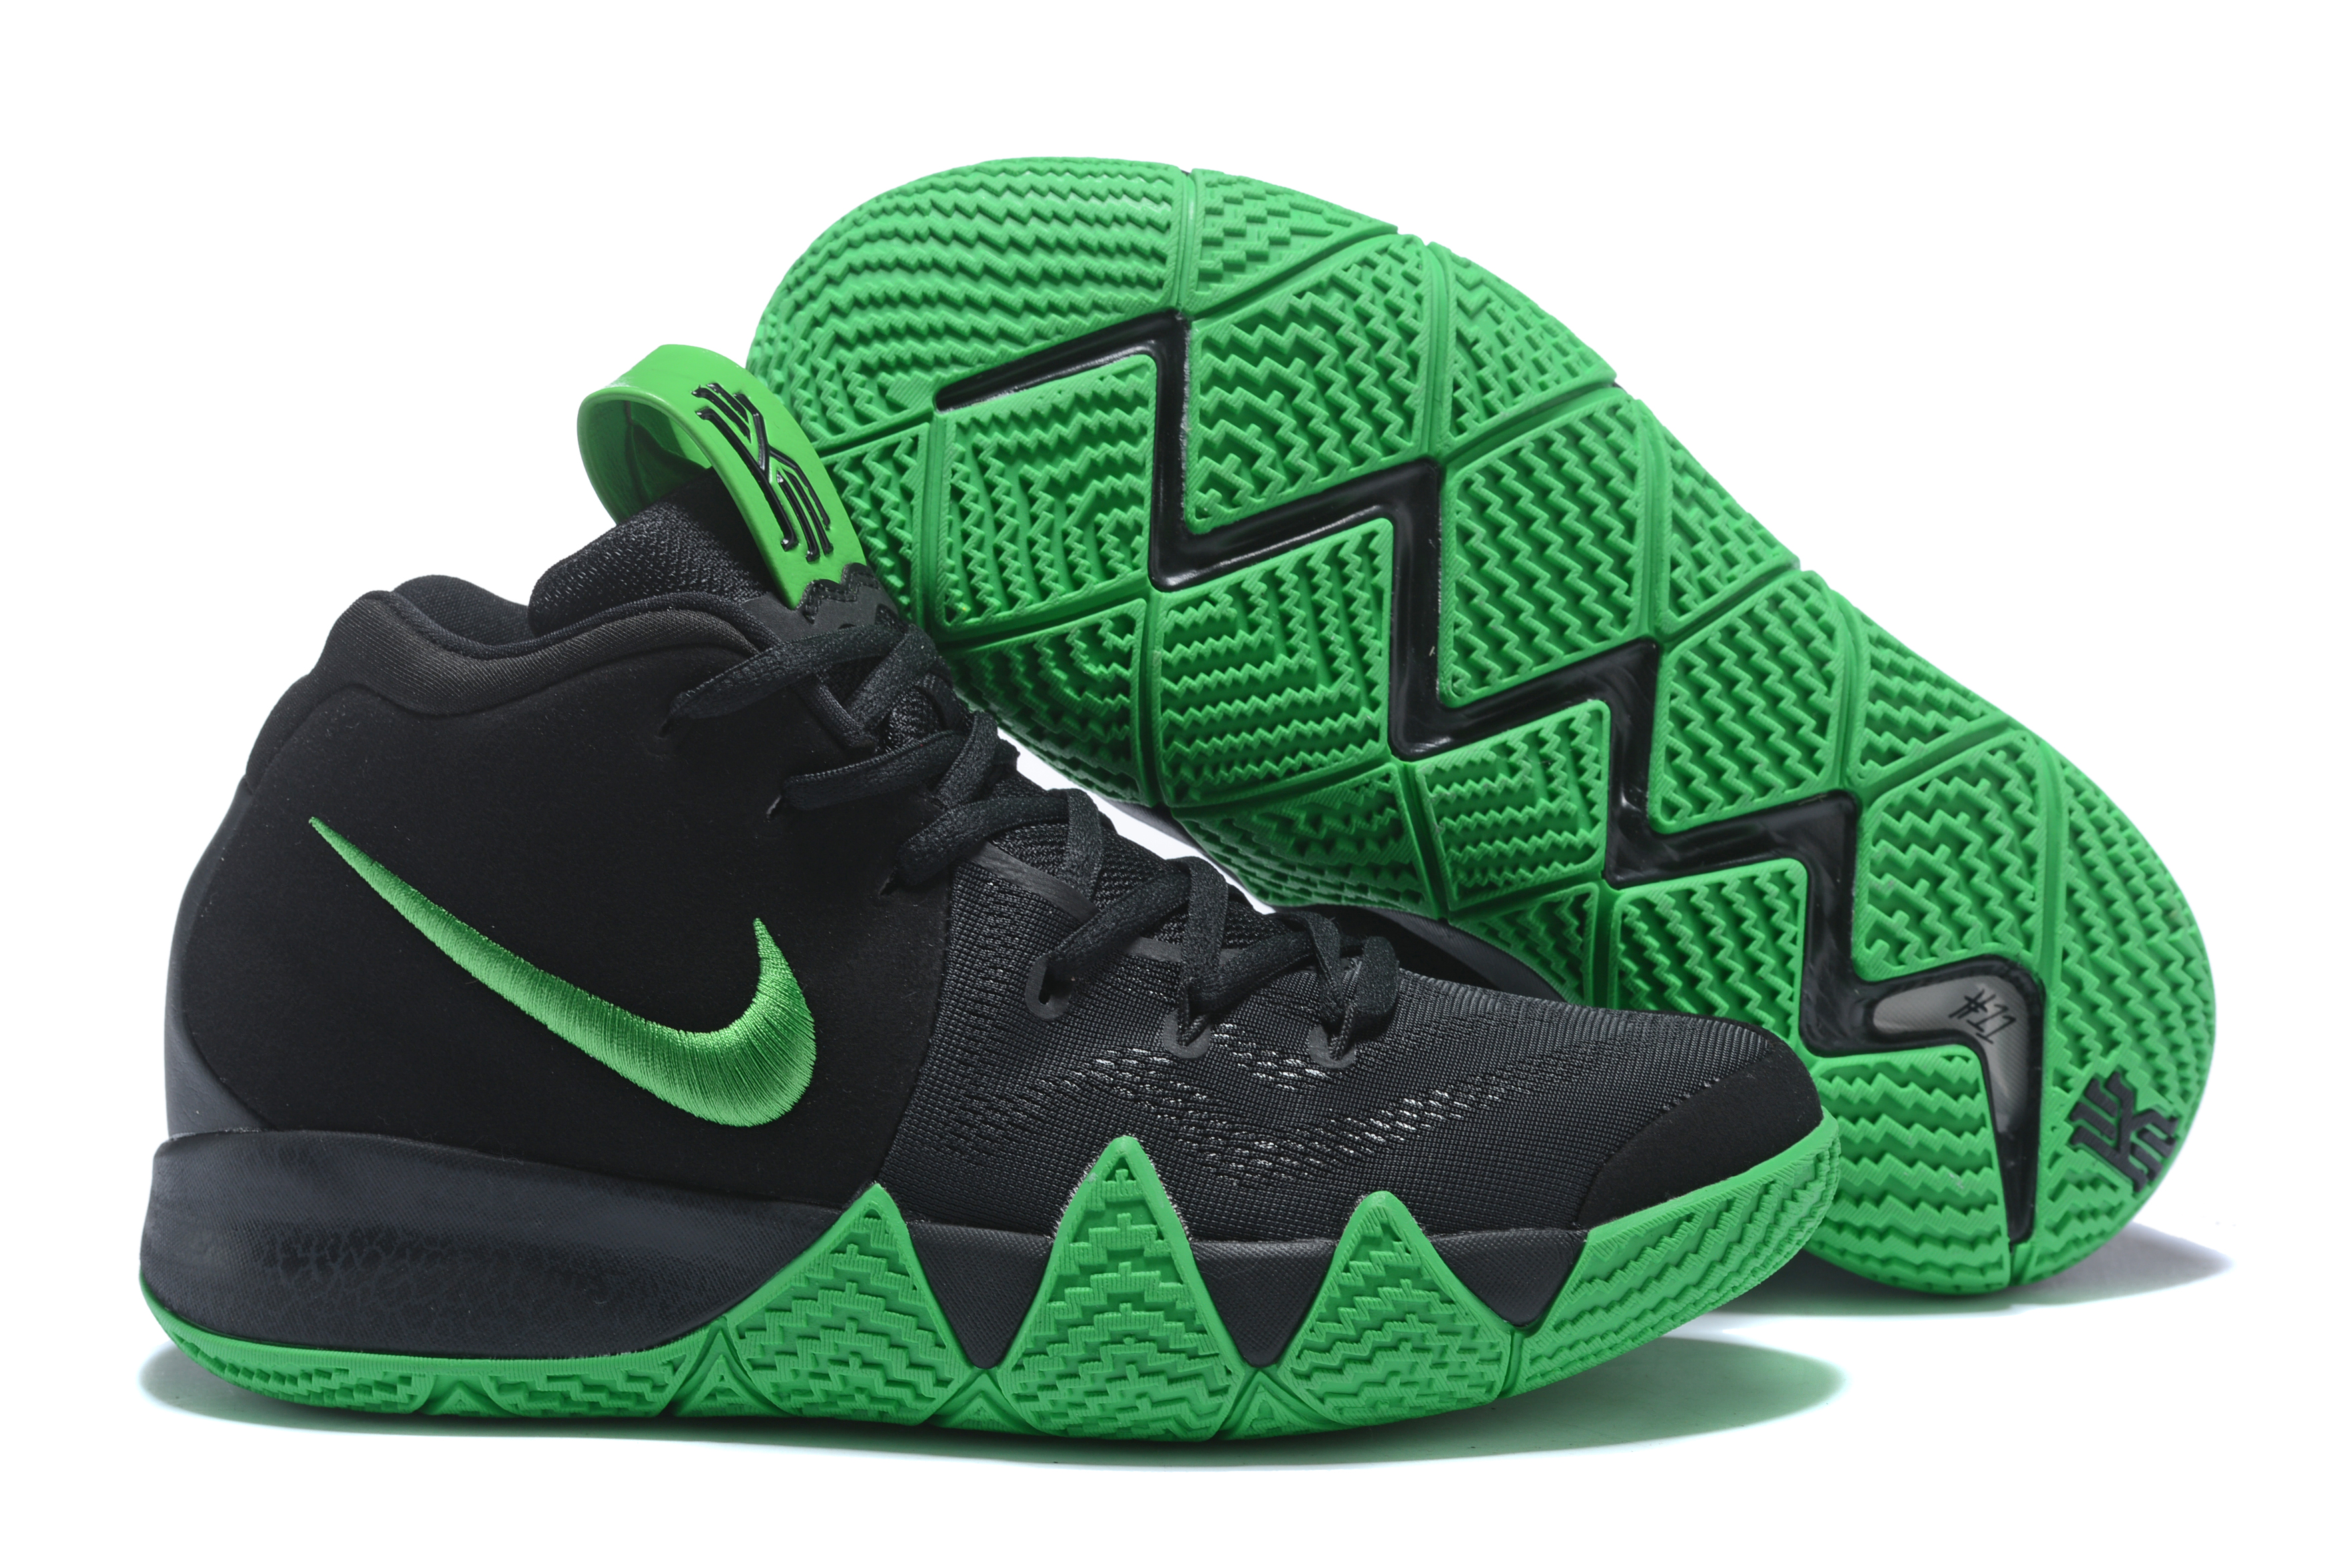 2018 Nike Kyrie 4 Black Green Shoes